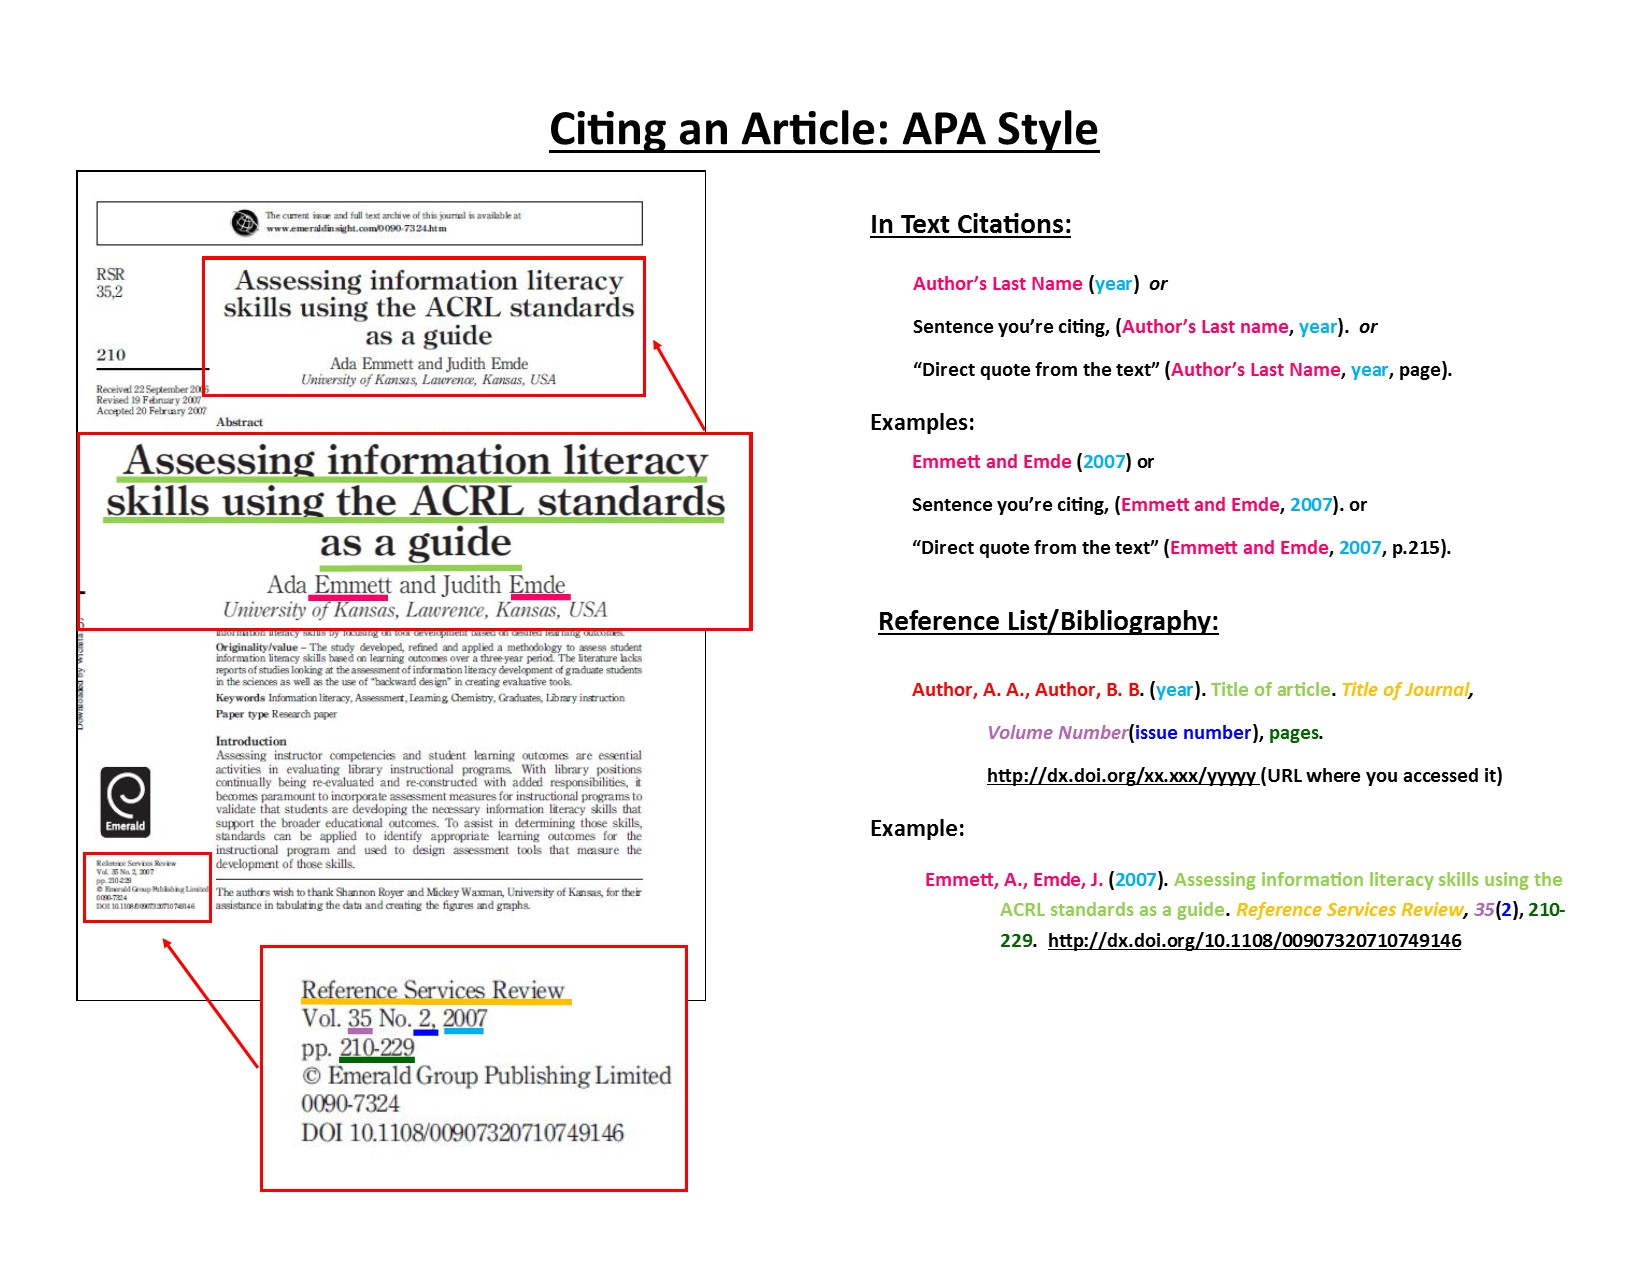 Apa citation eng 323 language acquisition guides at california apa article citation infographic ccuart